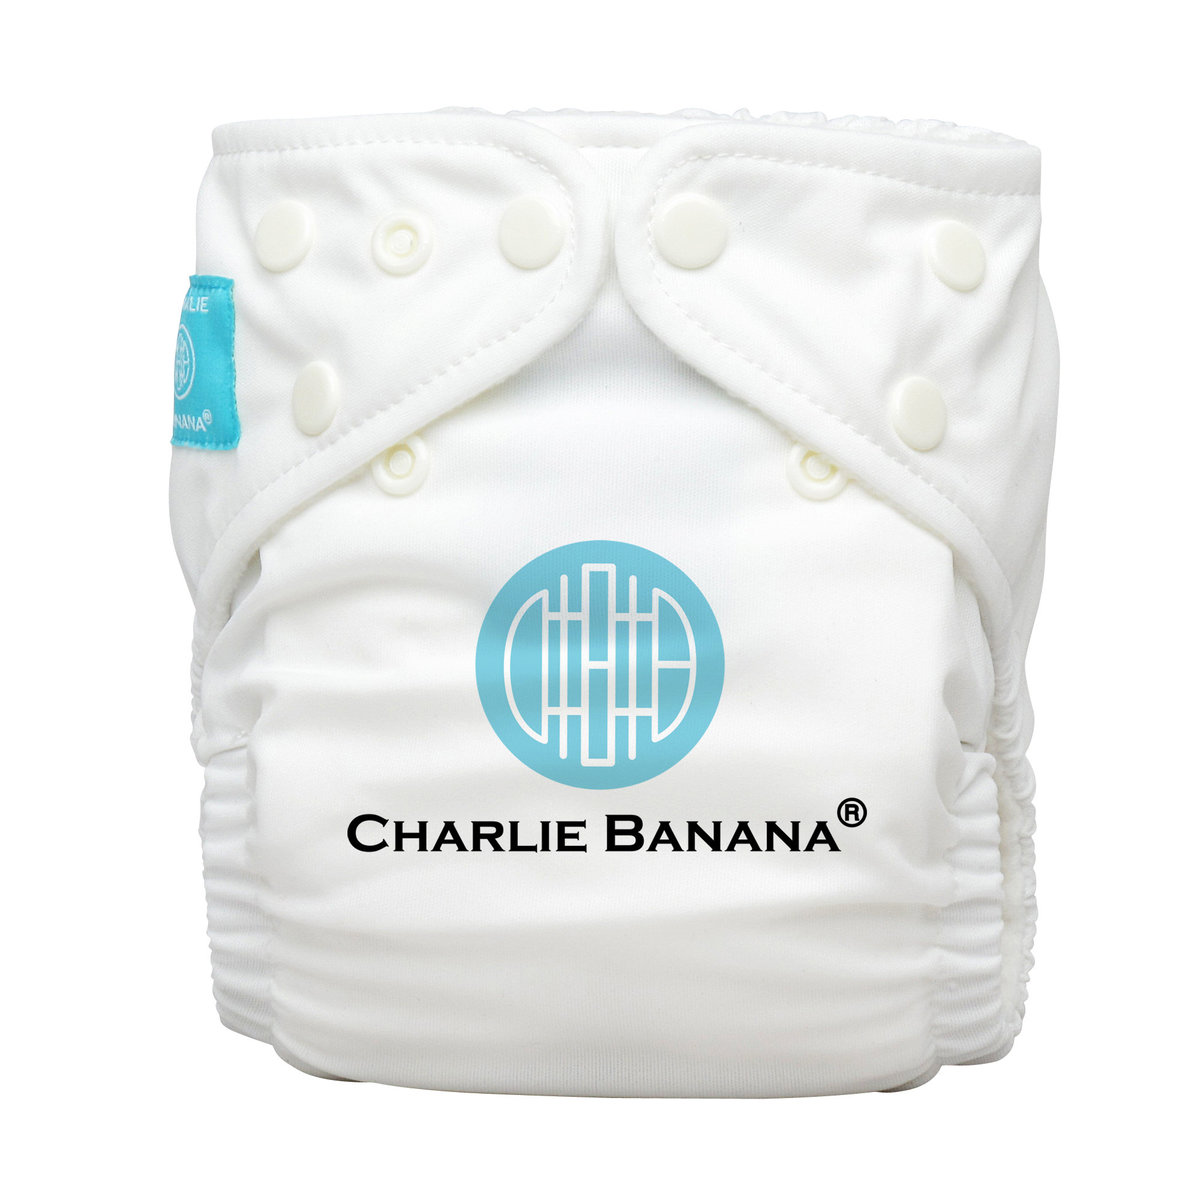 Reusable Infant Diaper CB Logo White (Each comes with 1 insert)